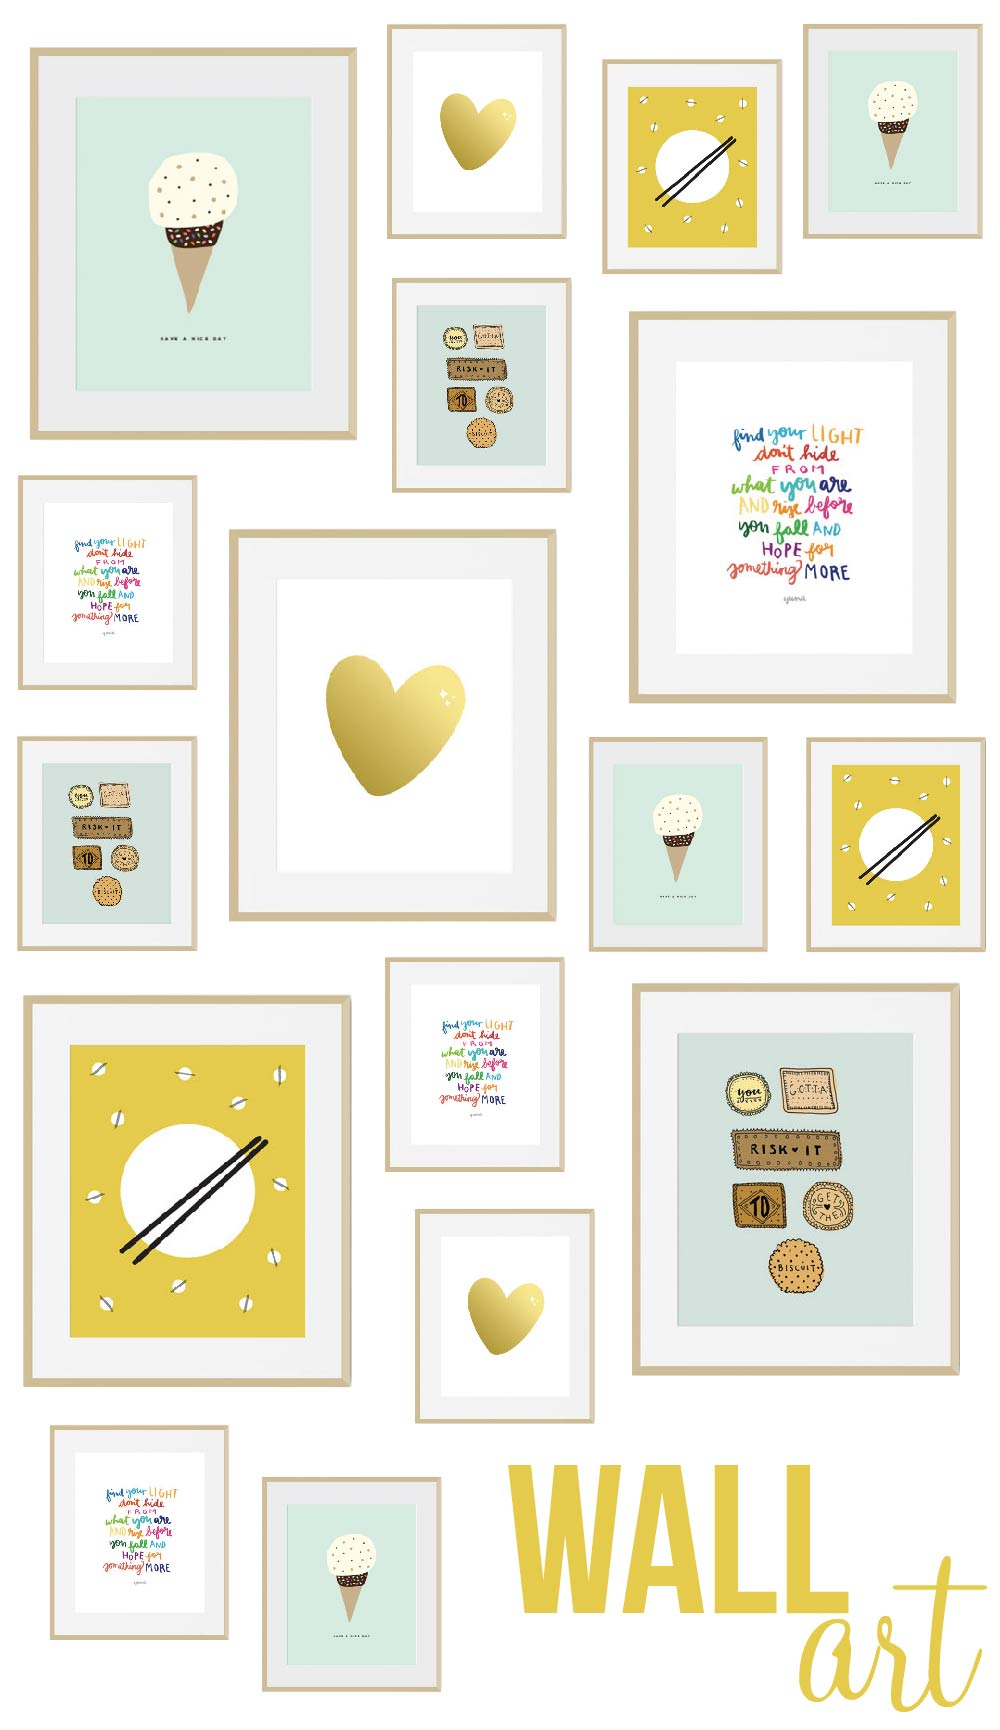 Gallery Wall Prints etsy find: create a gallery wall with prints from etsy shop 'nice